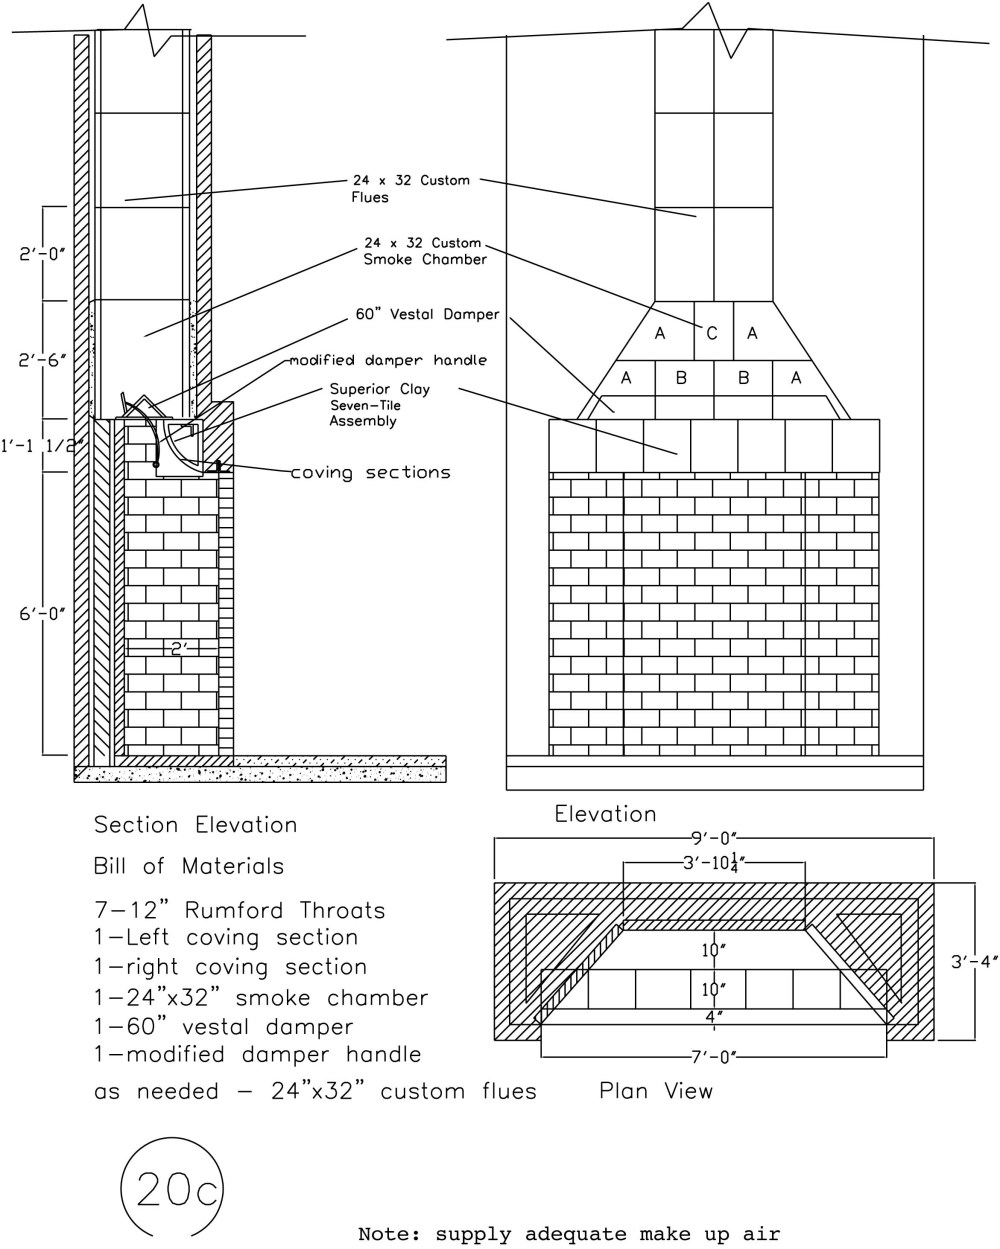 medium resolution of schematic with masonry fireplace dimensions illustration 1950 willys wagon 1952 willys